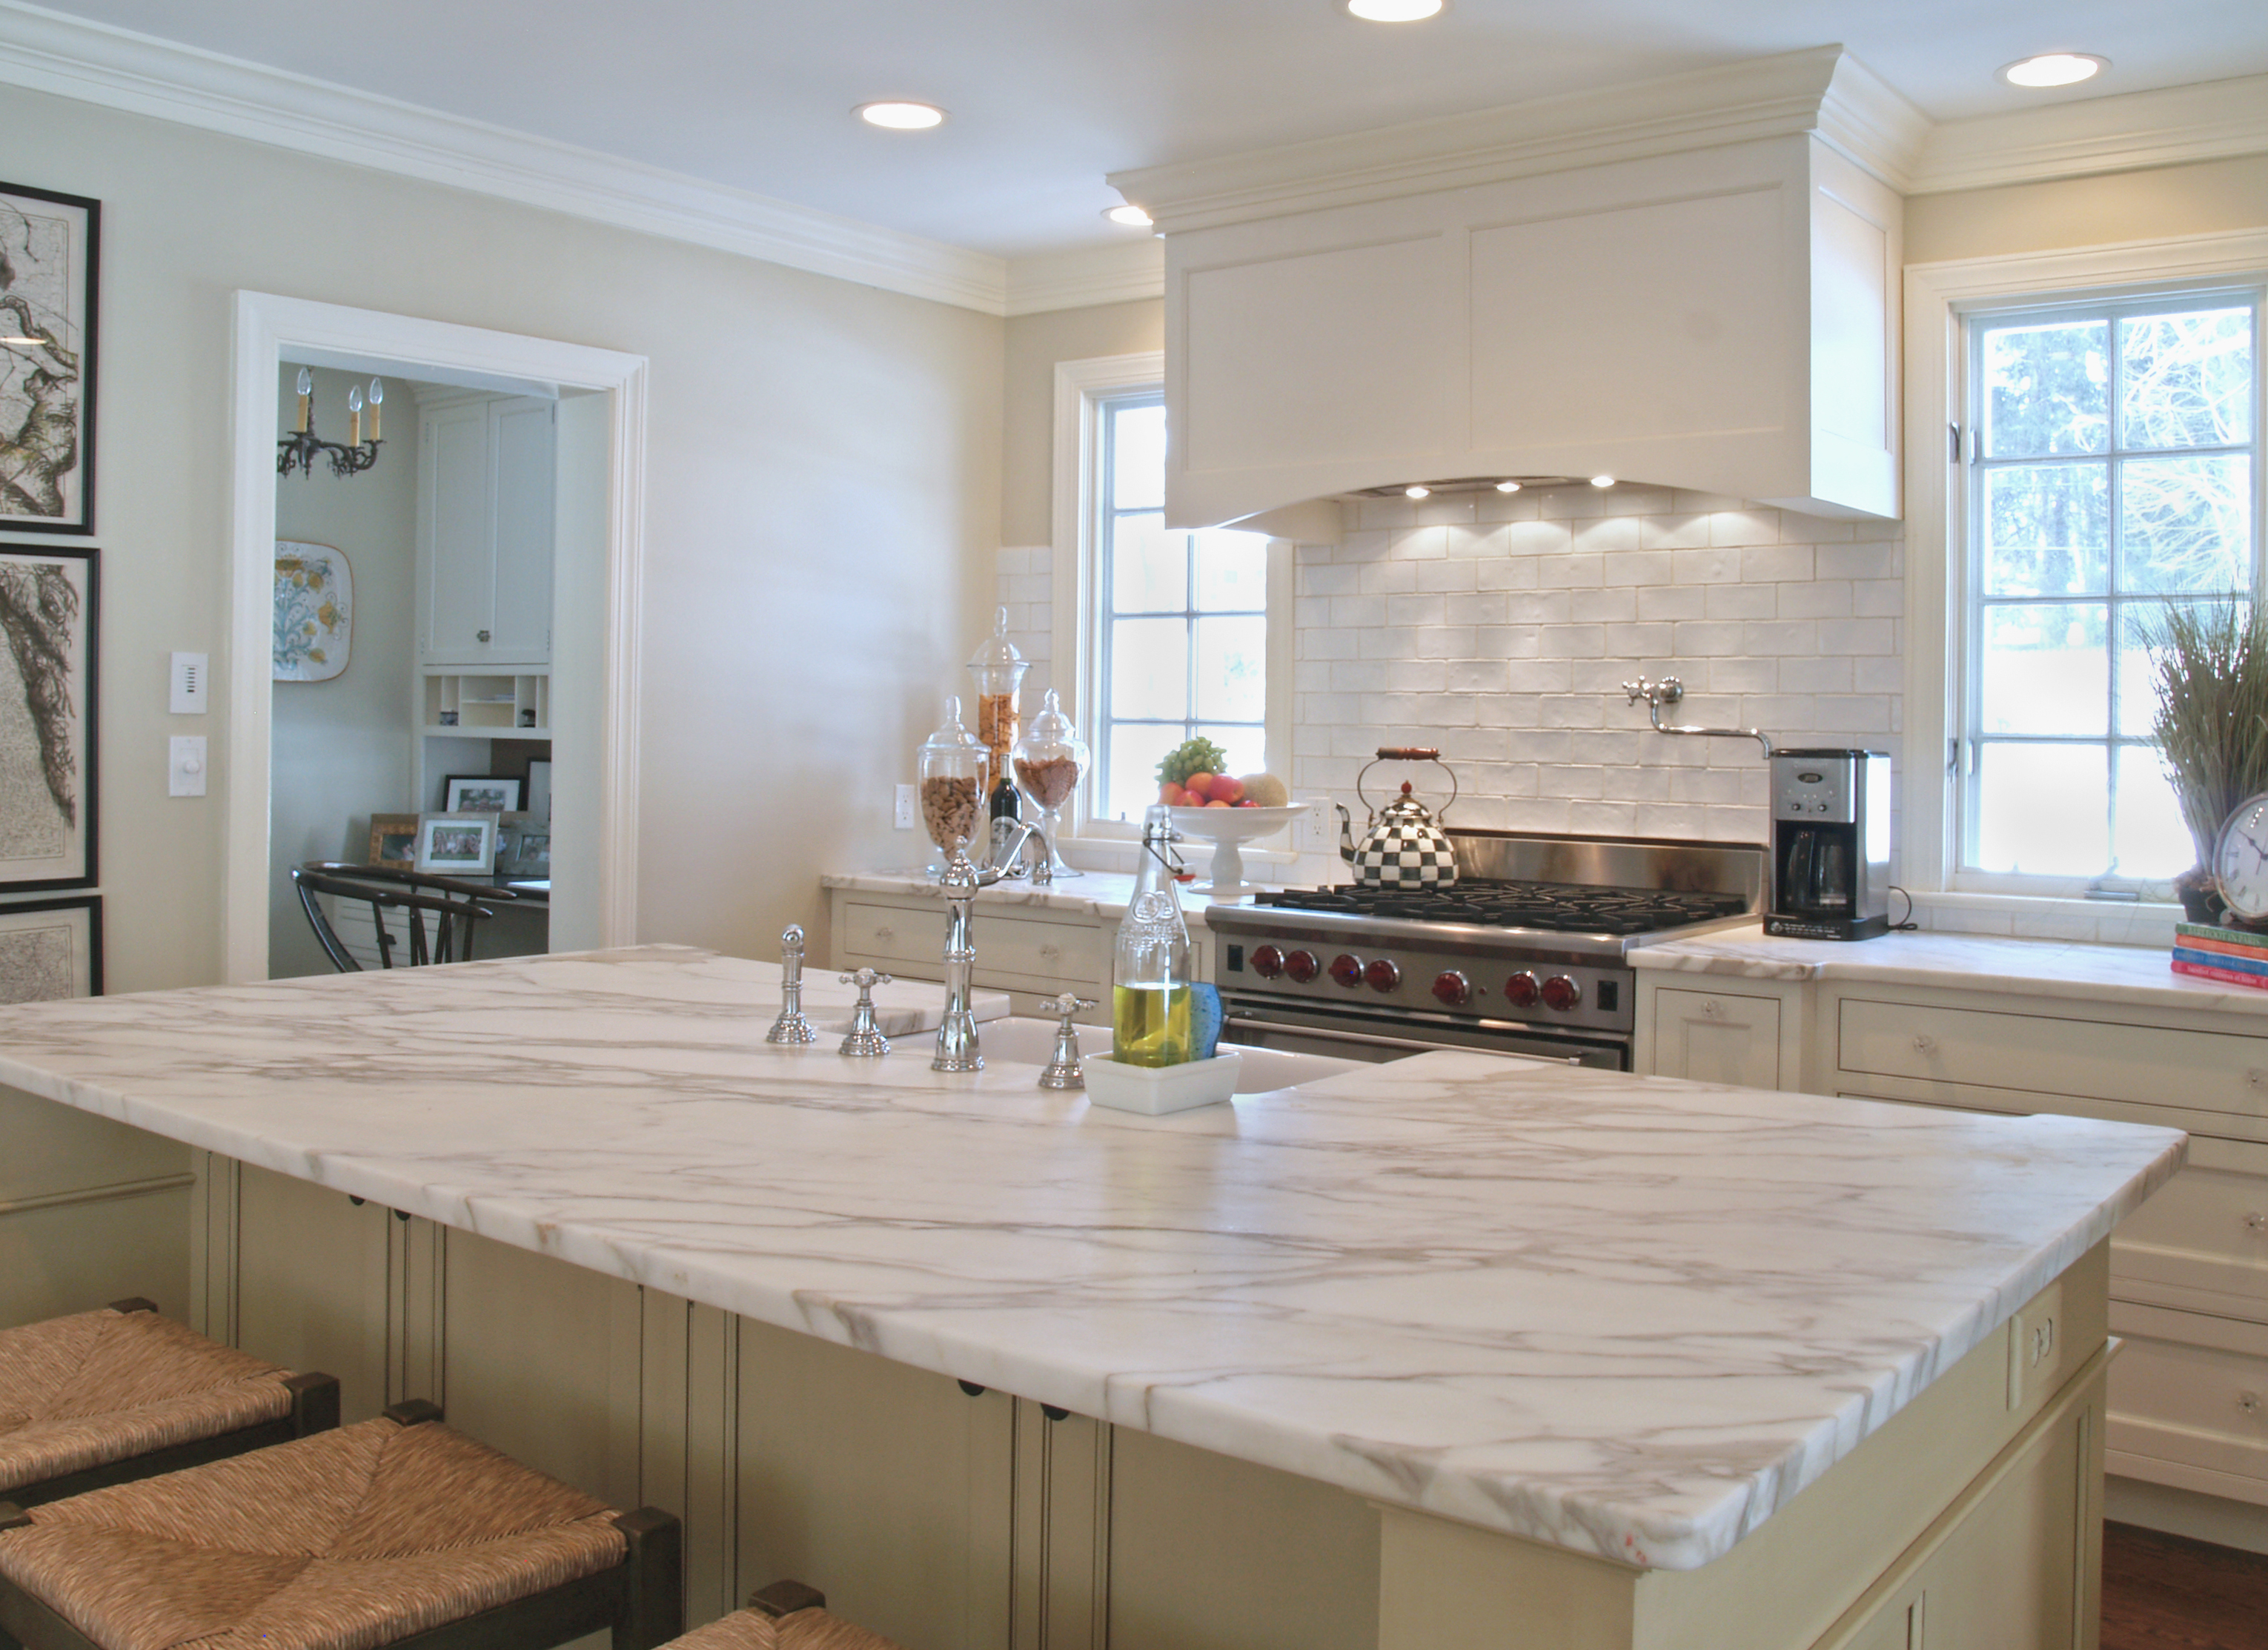 kitchen your countertops purchasing should orlando things before white cost granite know island countertop of installed with dsc